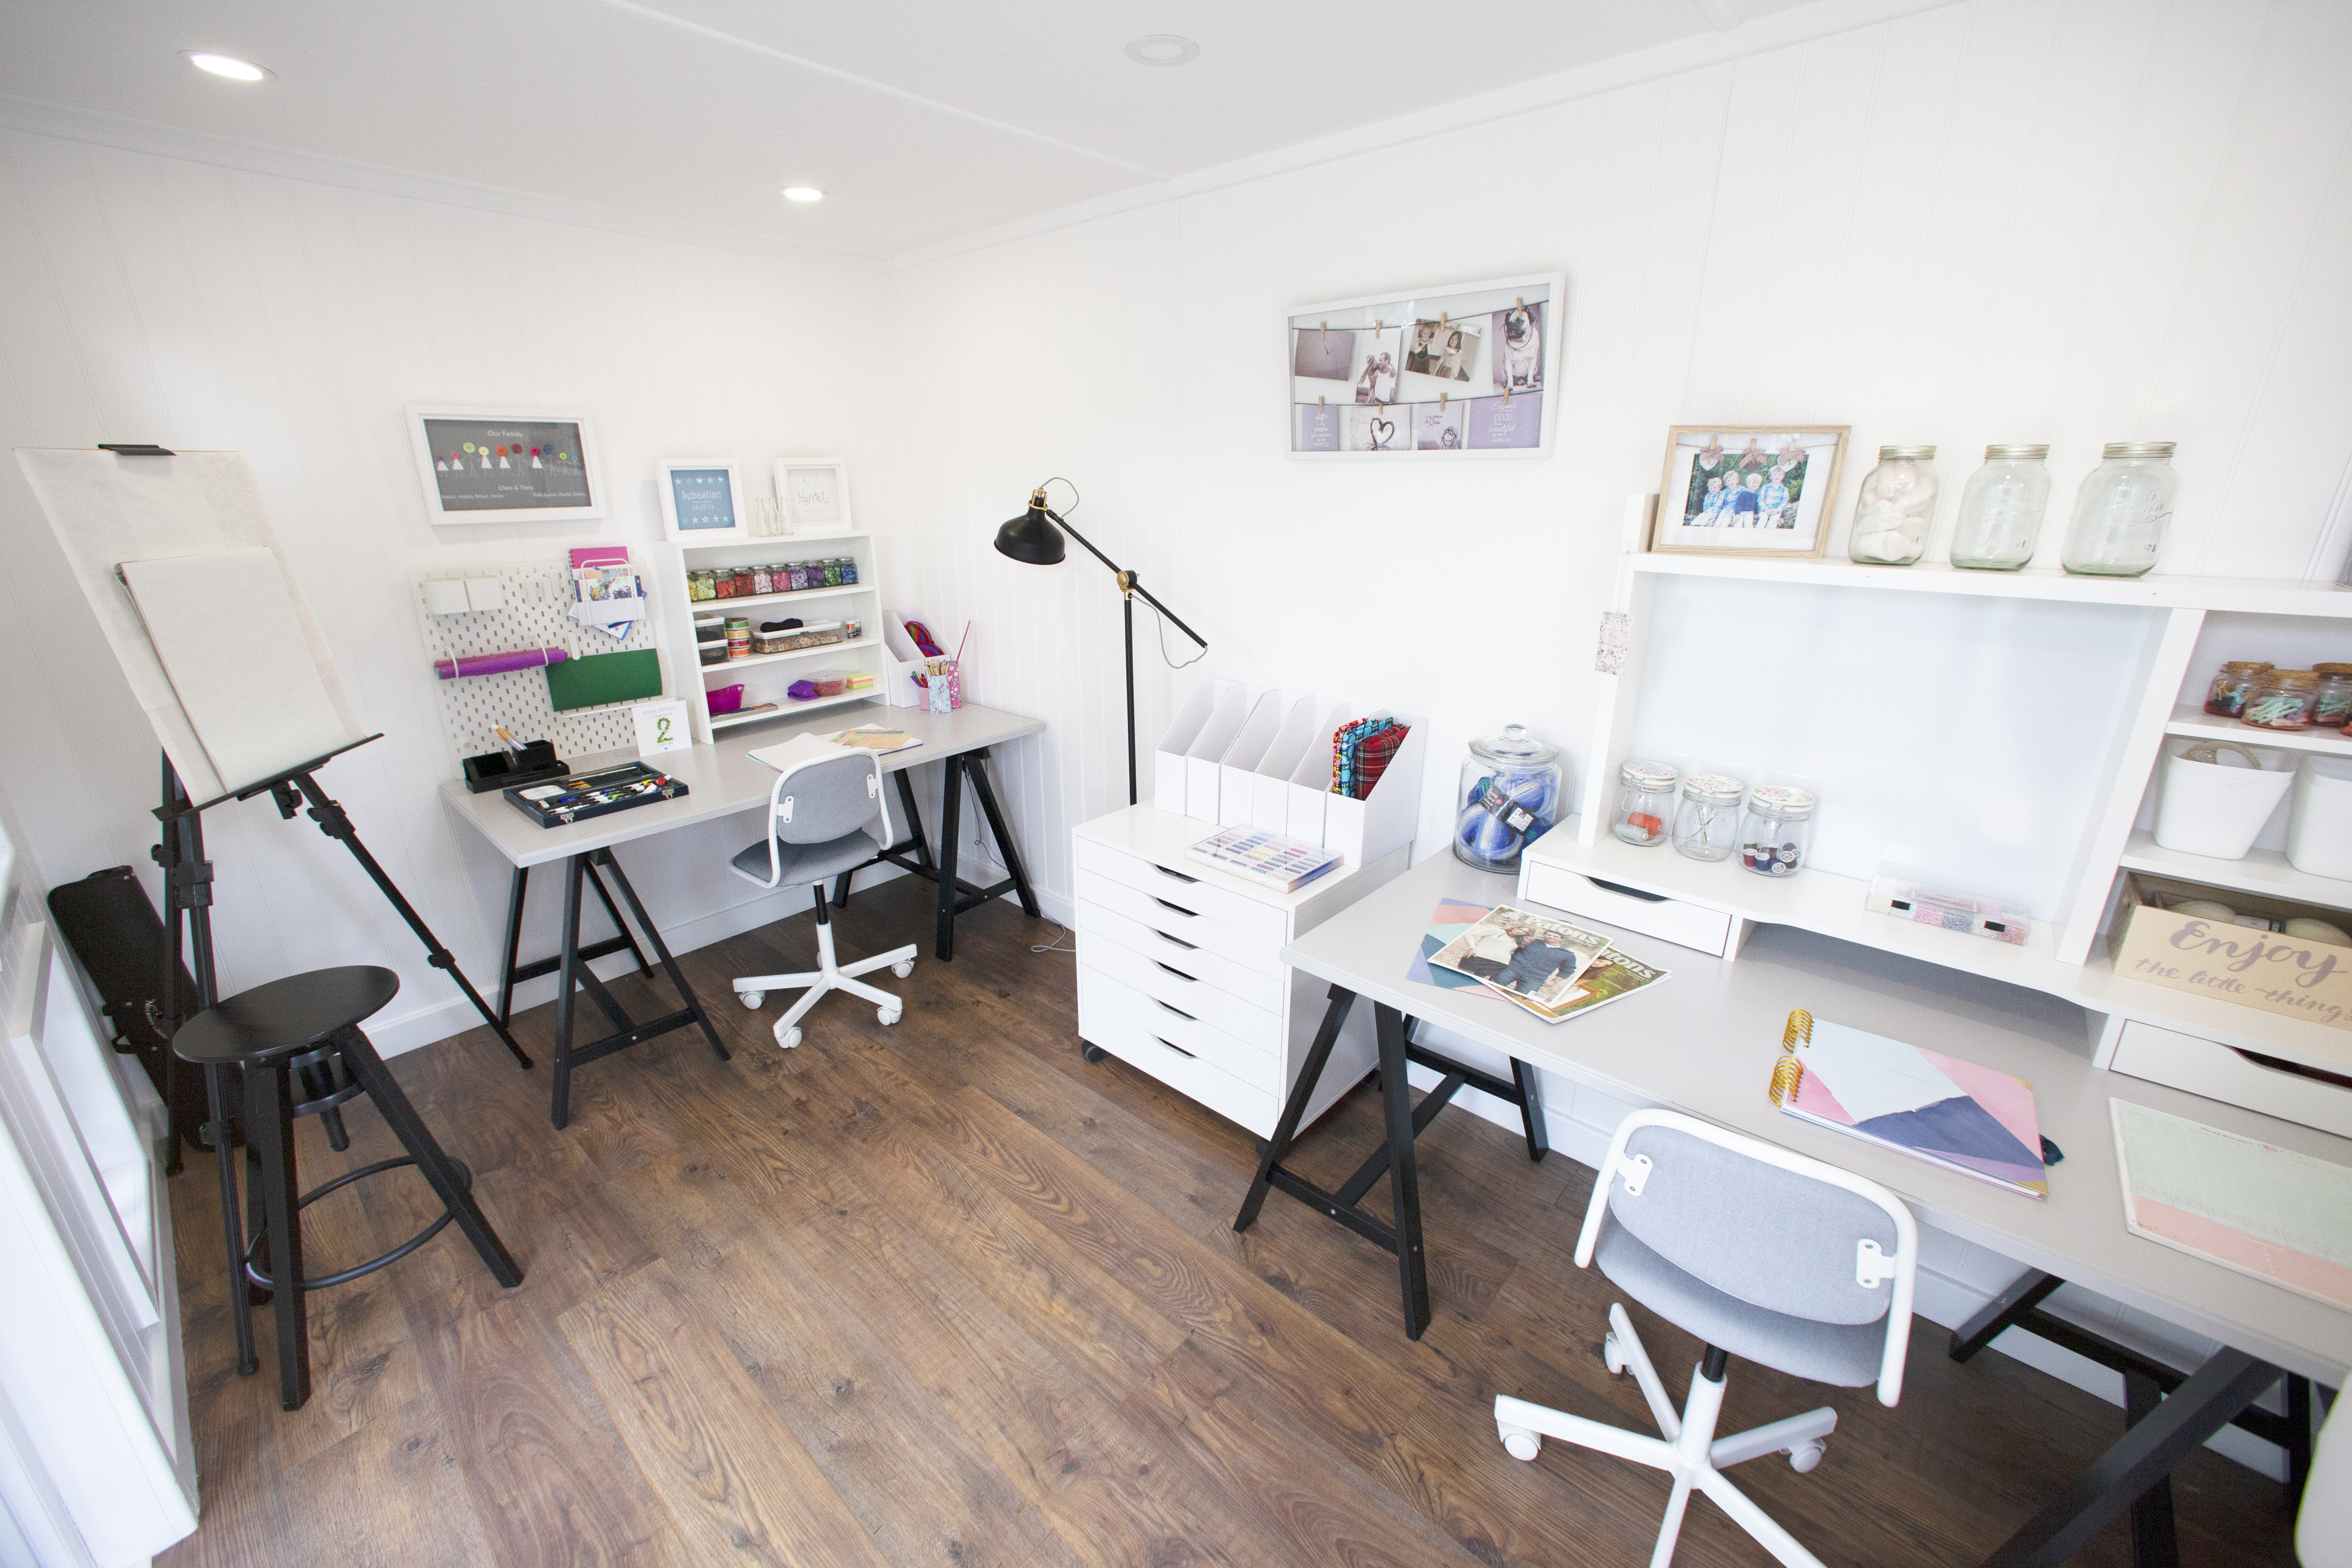 Cabin Master Show Site - Craft Room_04